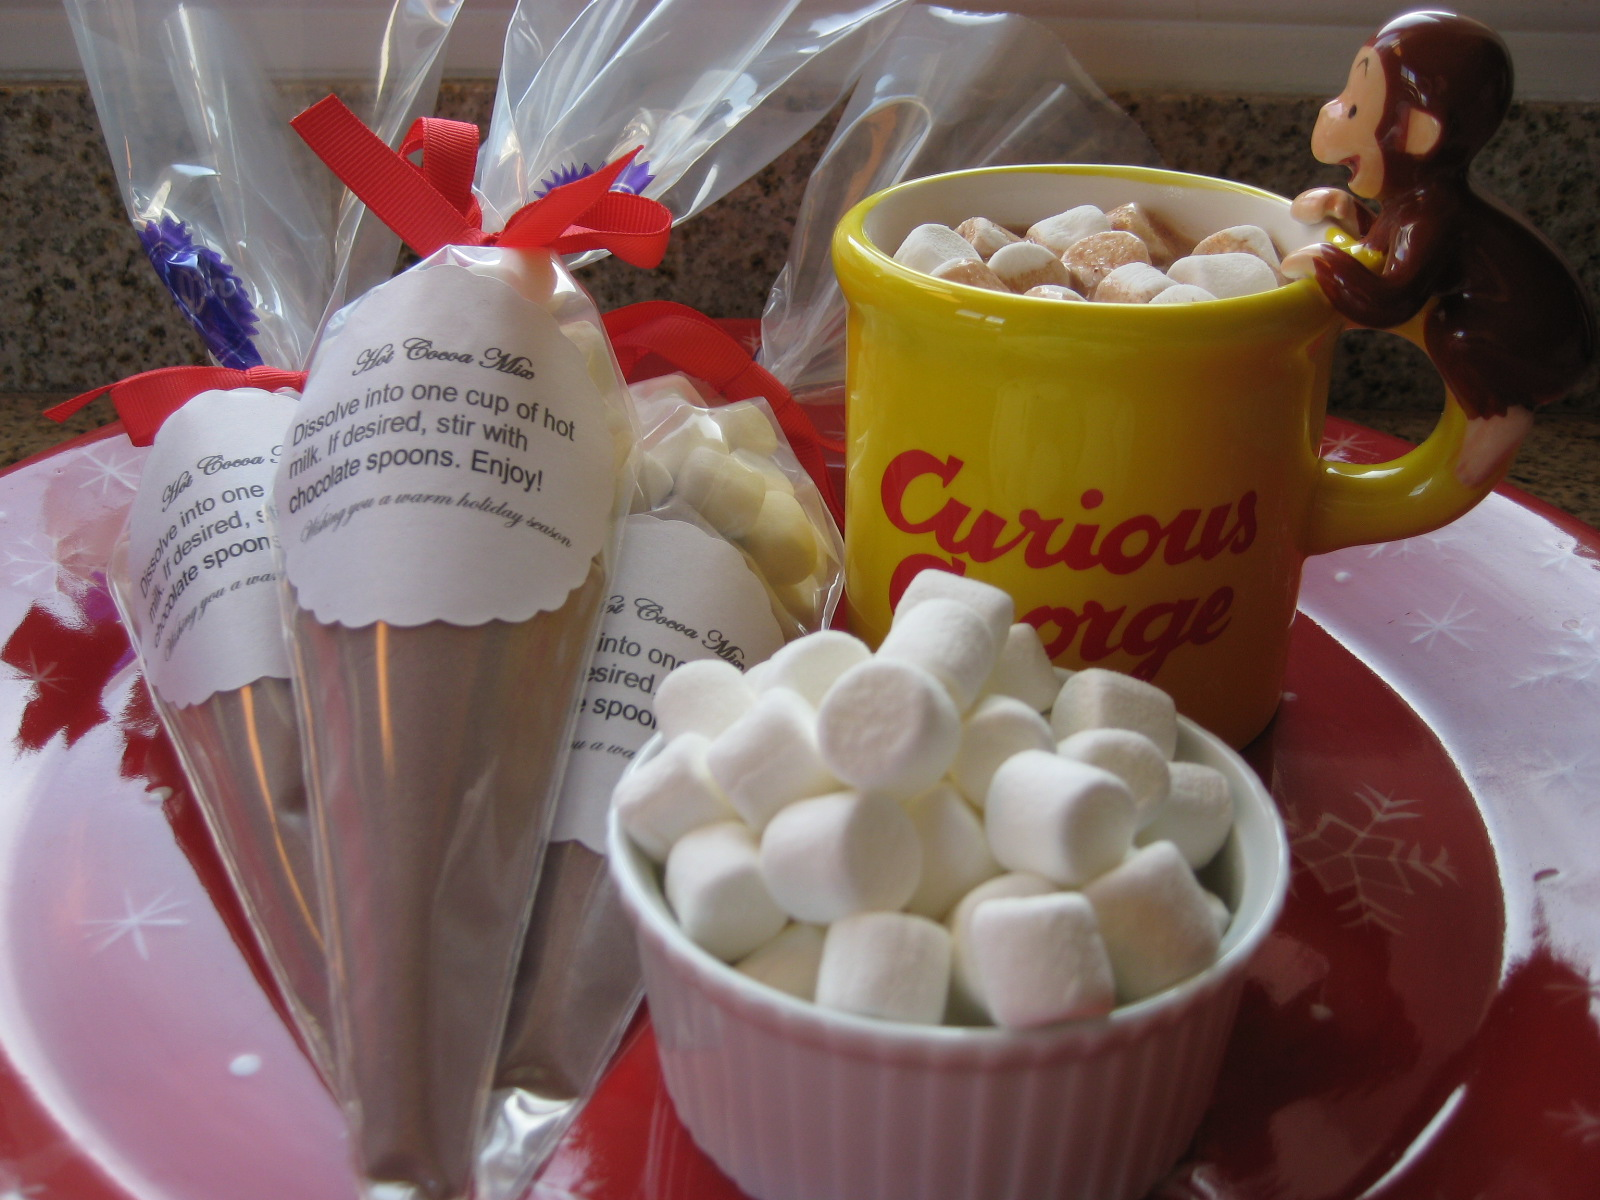 Hot cocoa mix saucy mommy - Gift ideas with chocolate ...